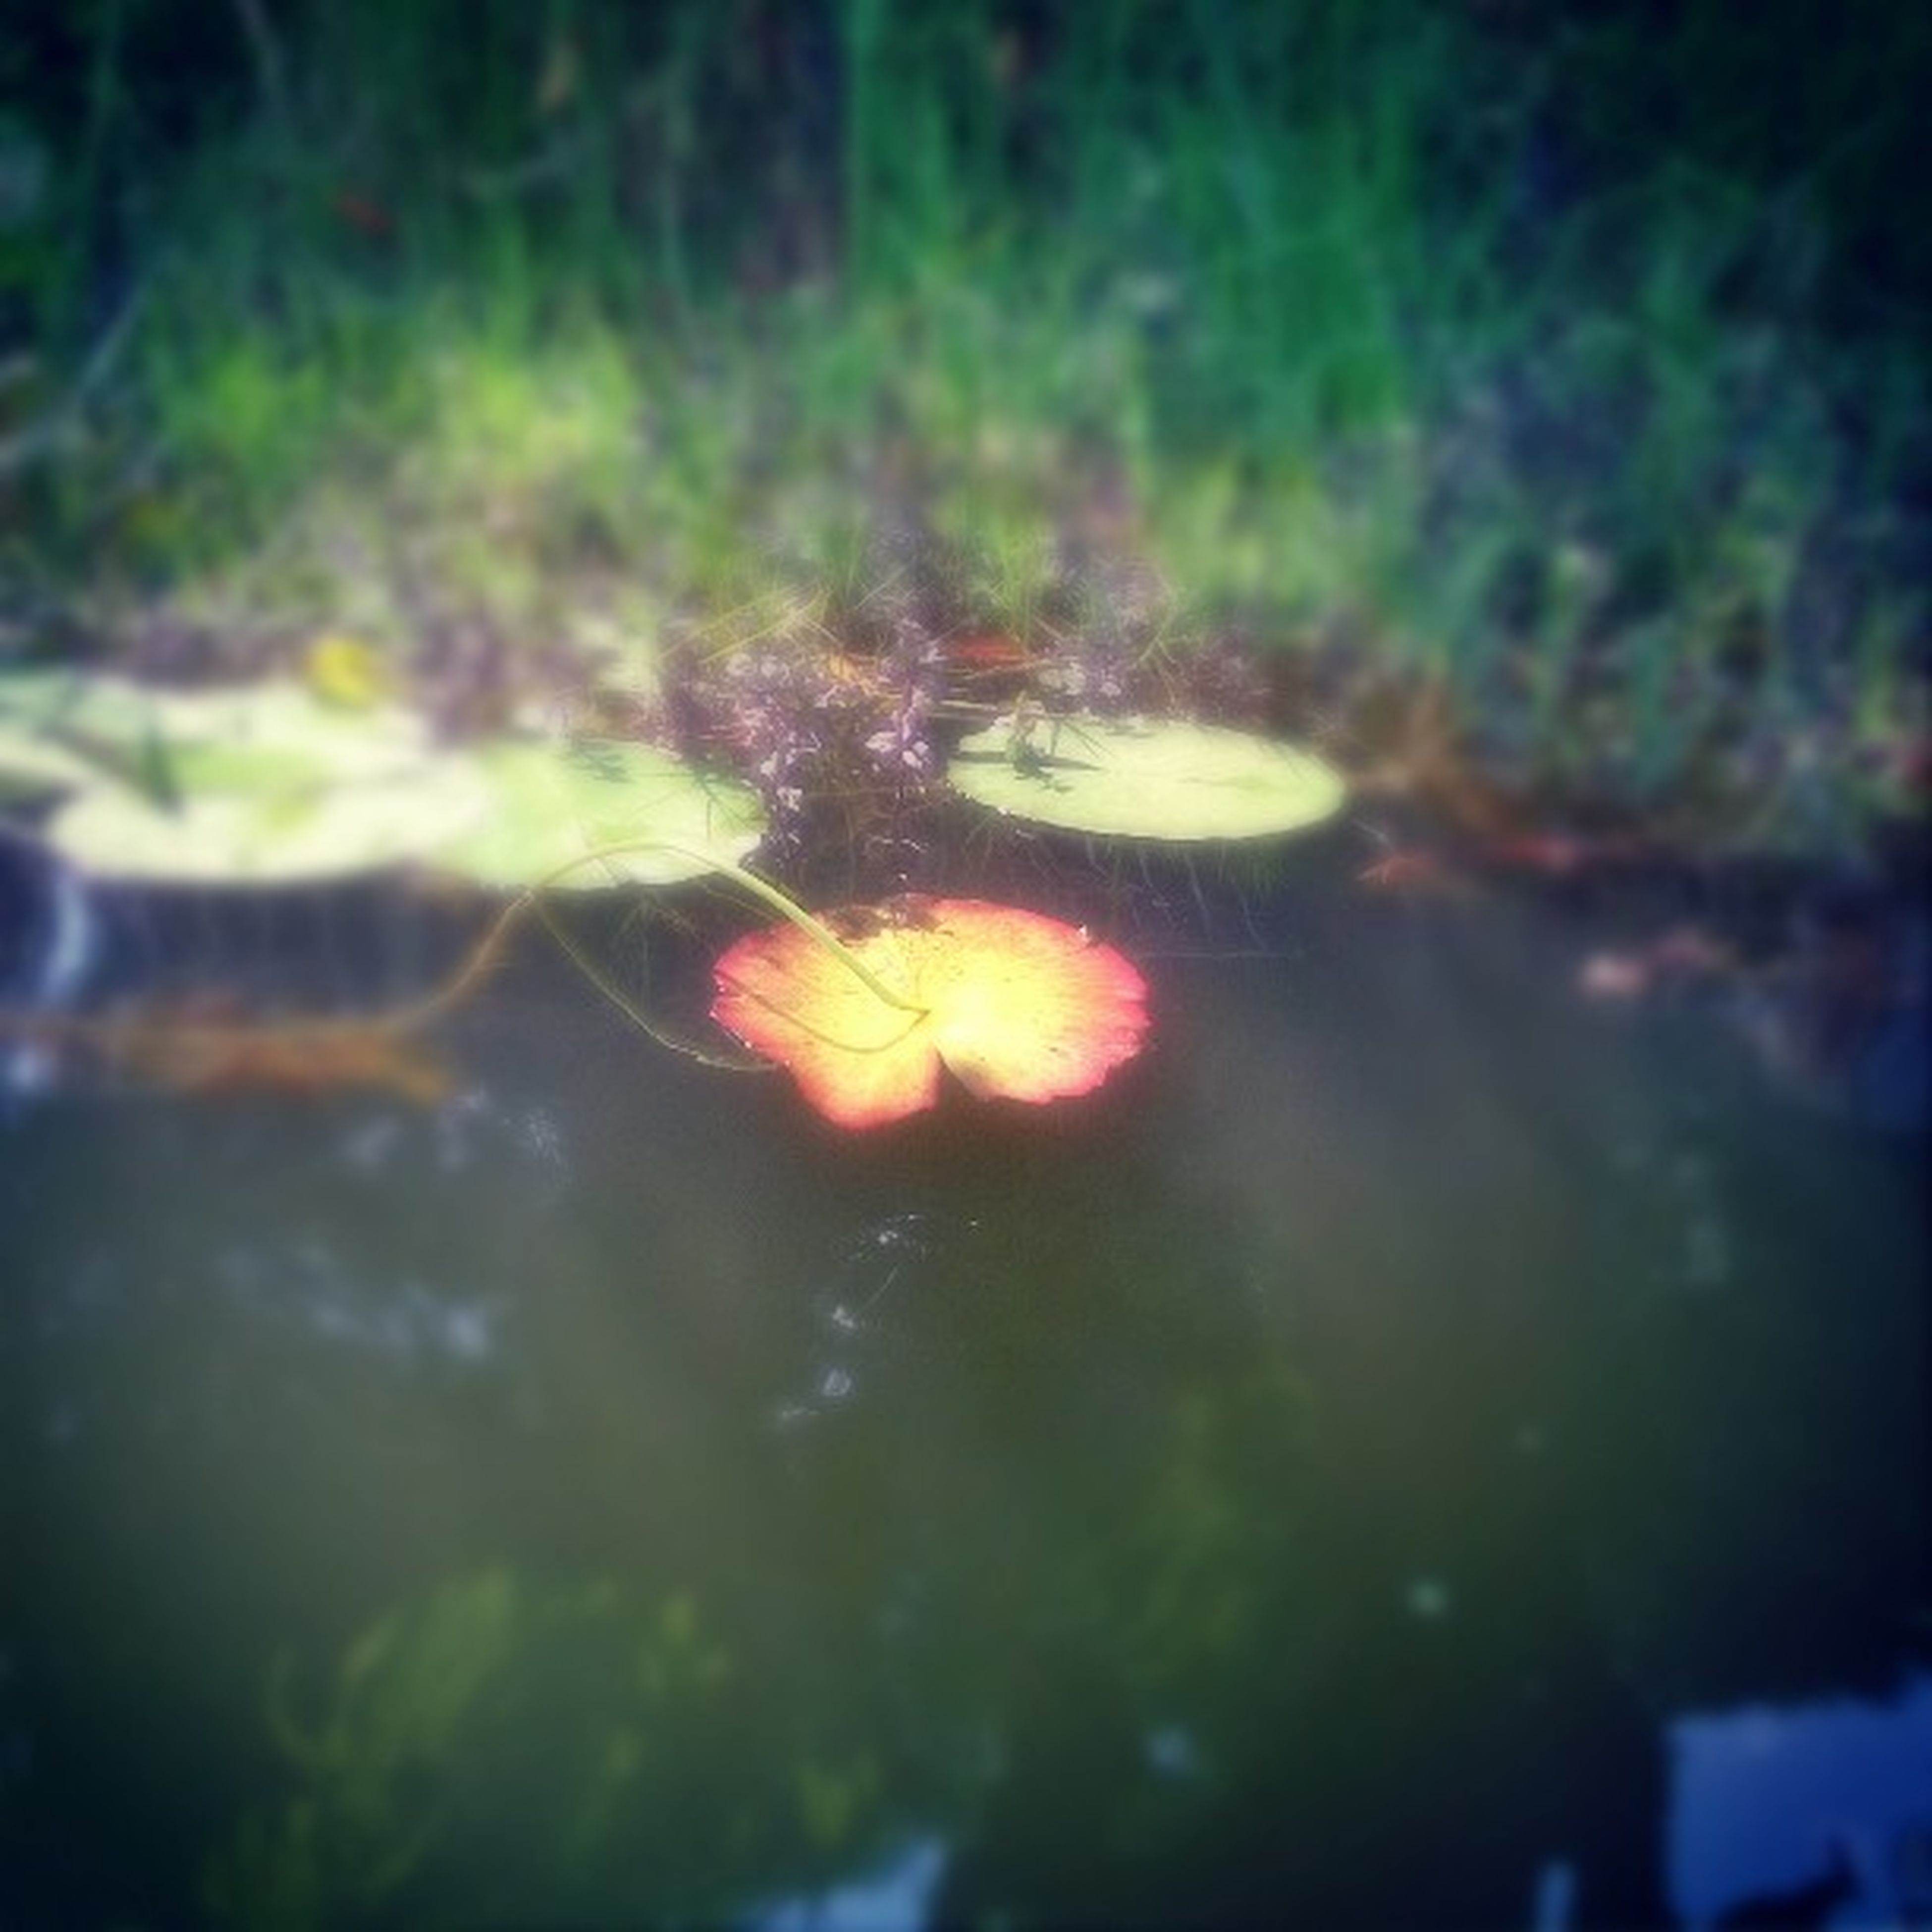 selective focus, water, nature, growth, close-up, night, outdoors, focus on foreground, illuminated, no people, tree, plant, beauty in nature, tranquility, green color, reflection, rock - object, glowing, multi colored